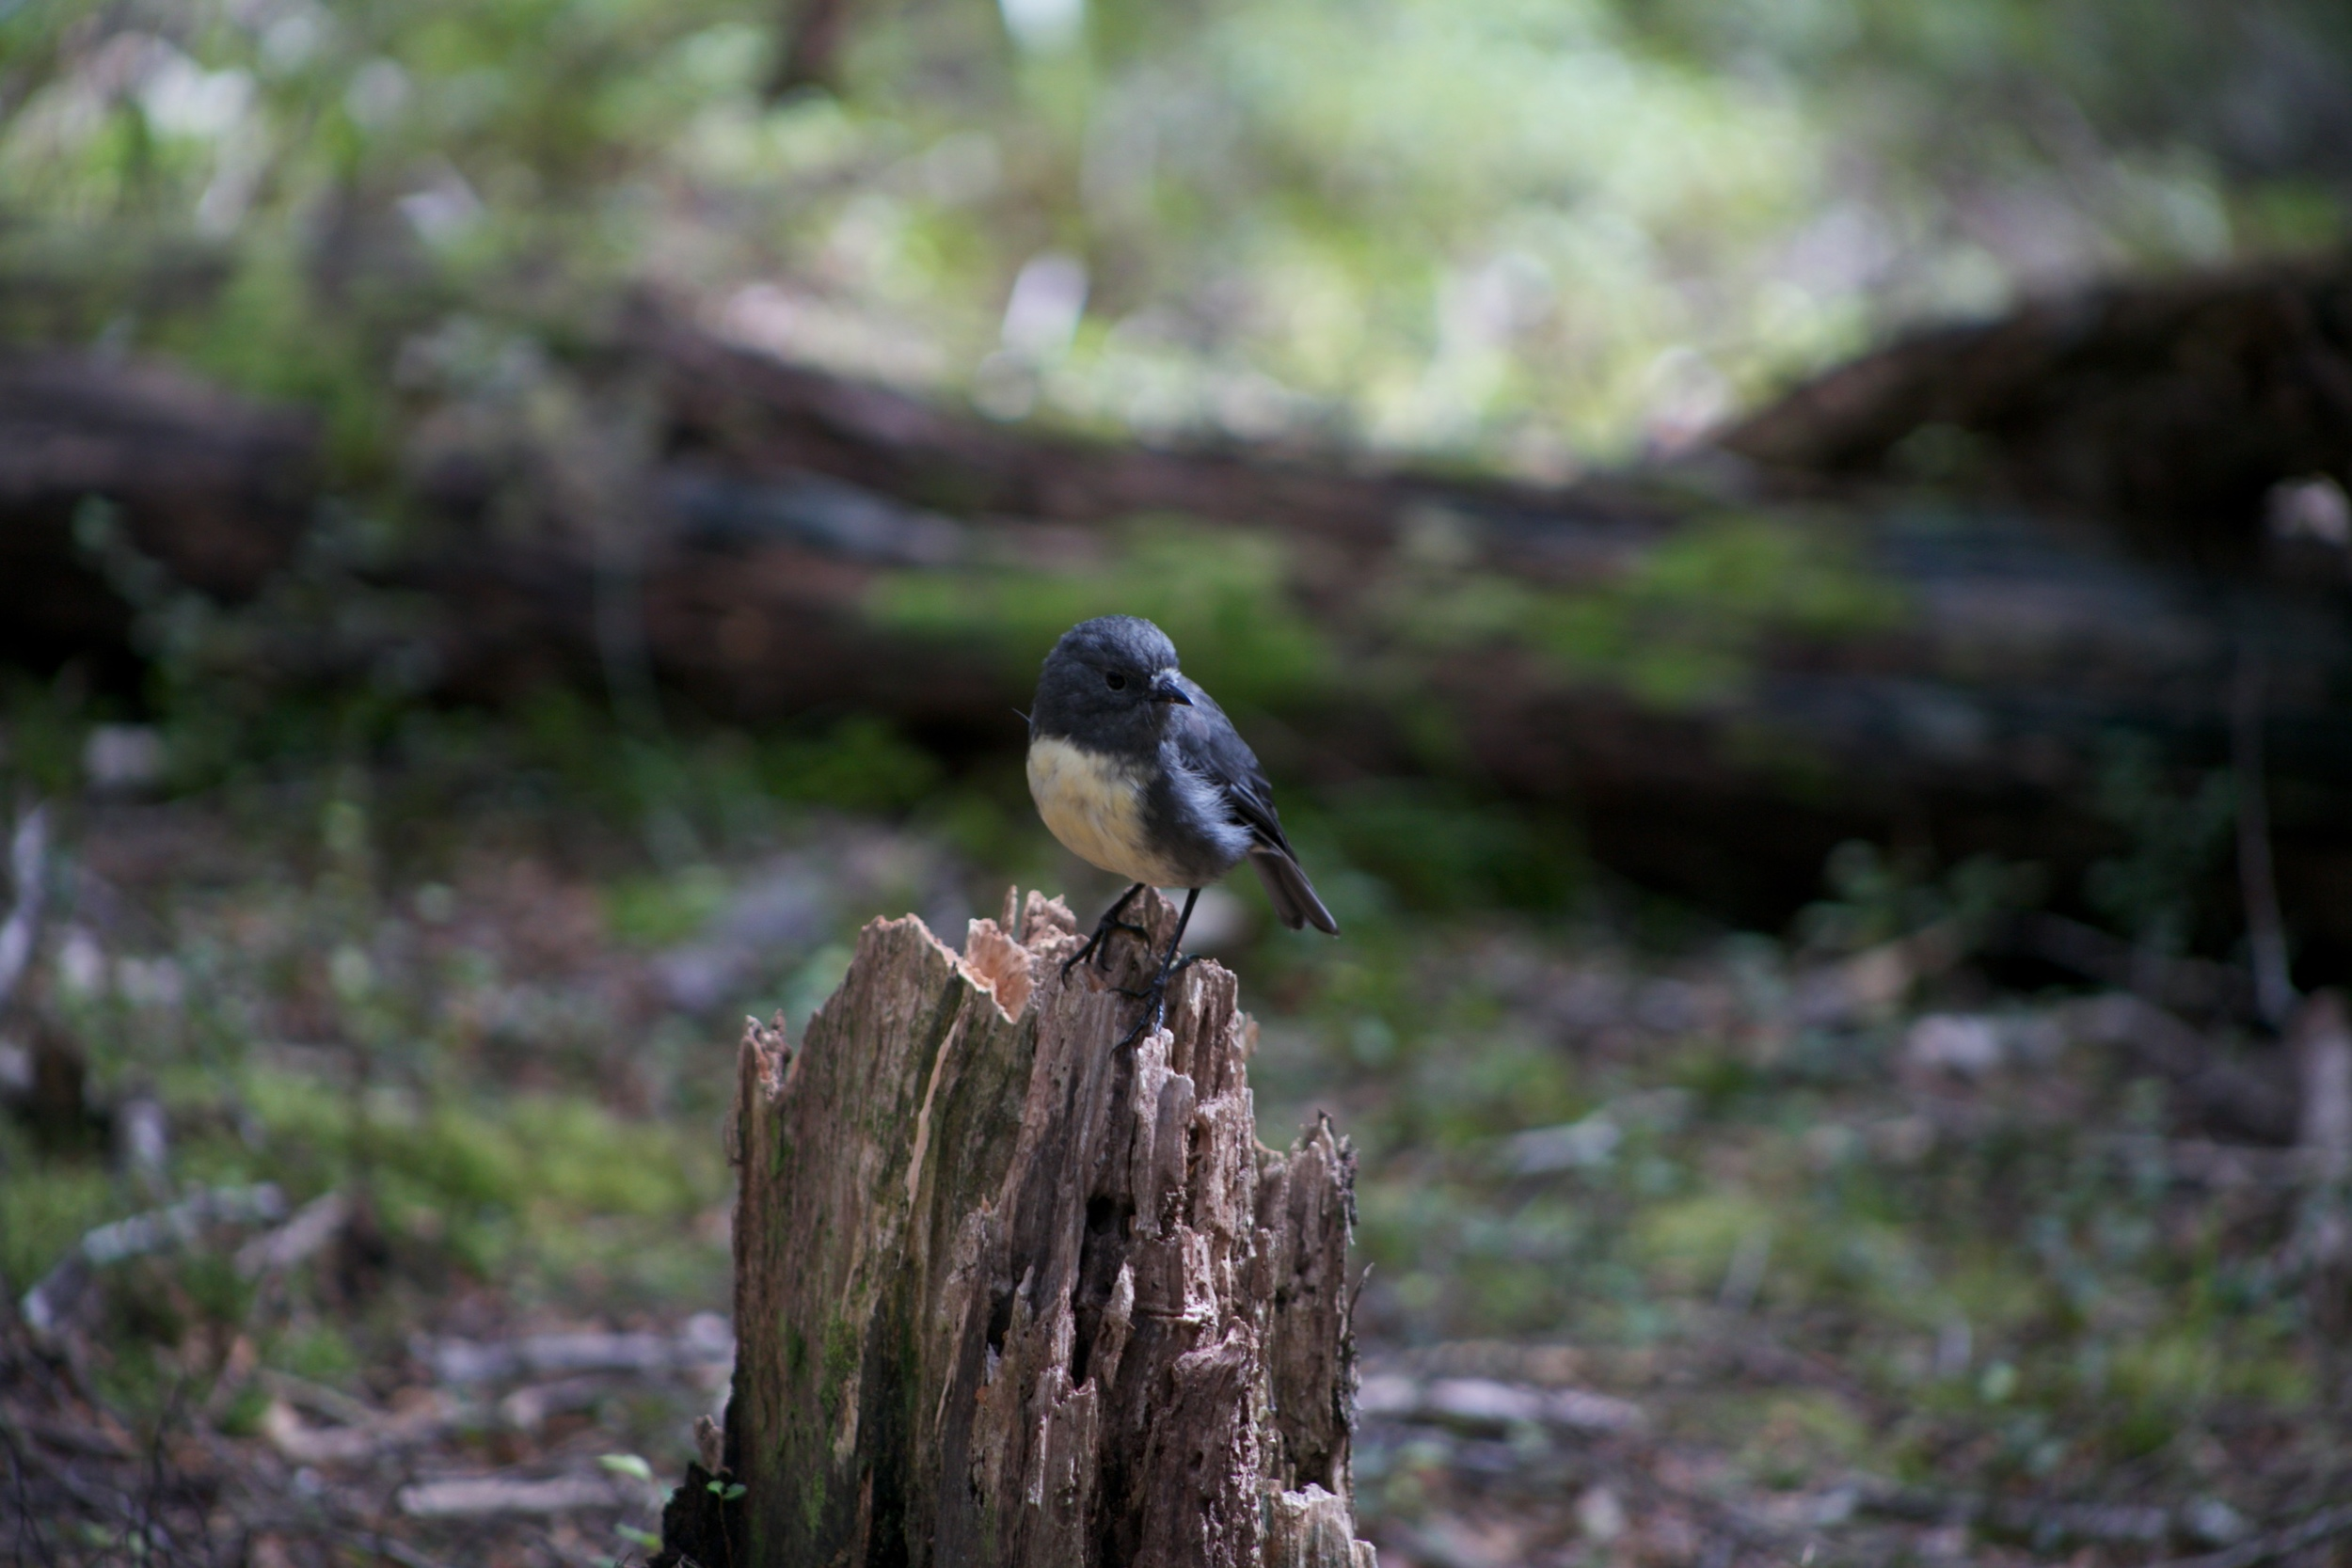 A South Island robin perched on a tree stump, at the Canaan Downs scenic reserve.